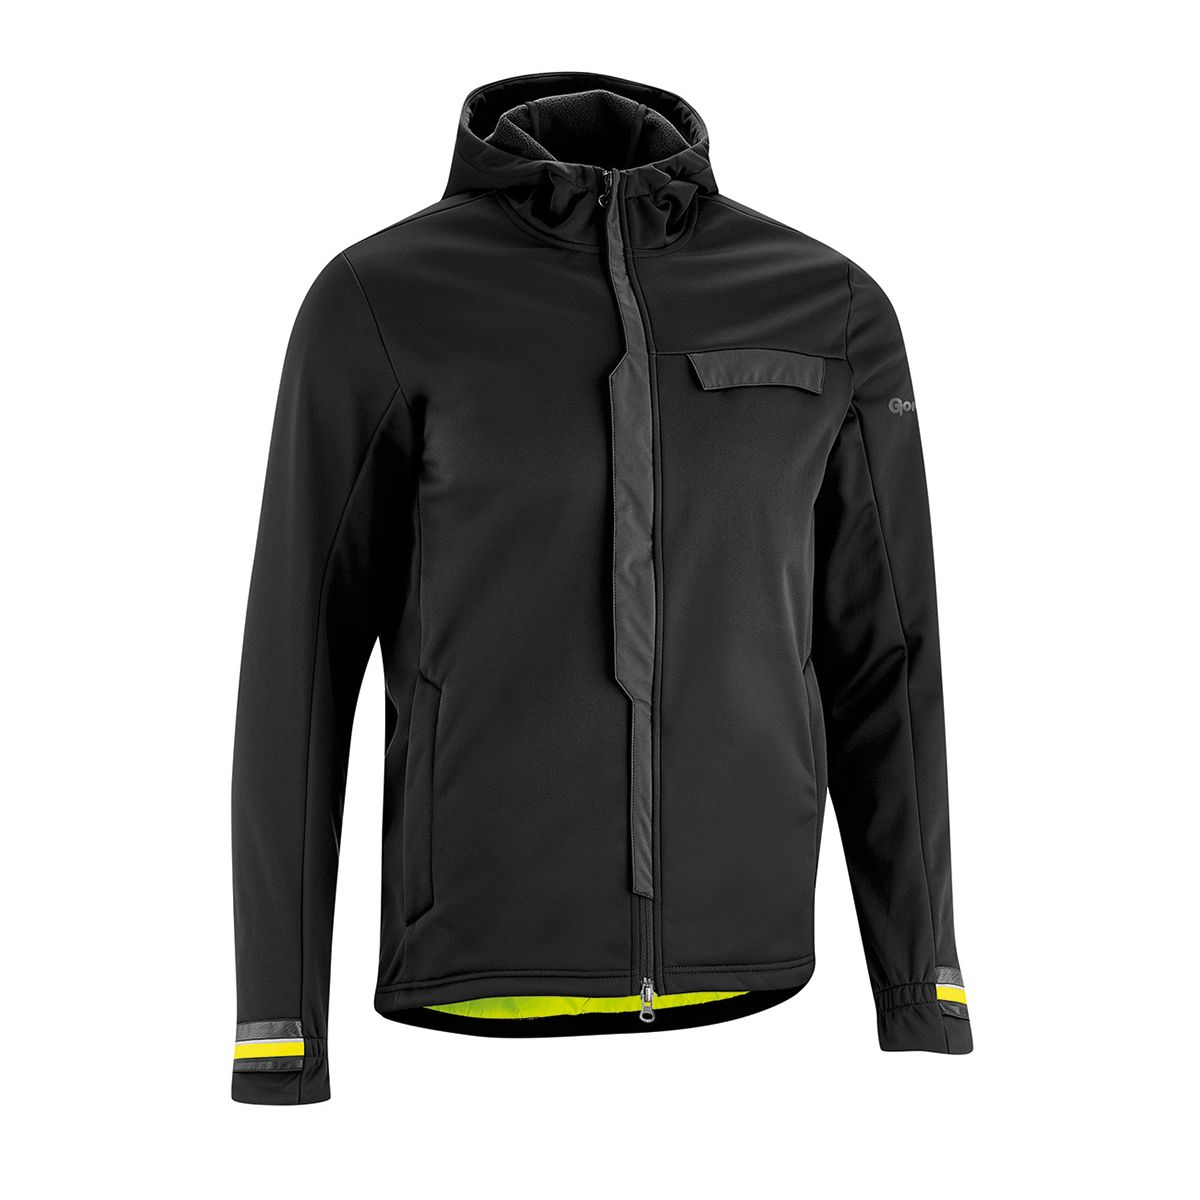 FENIT softshell jacket